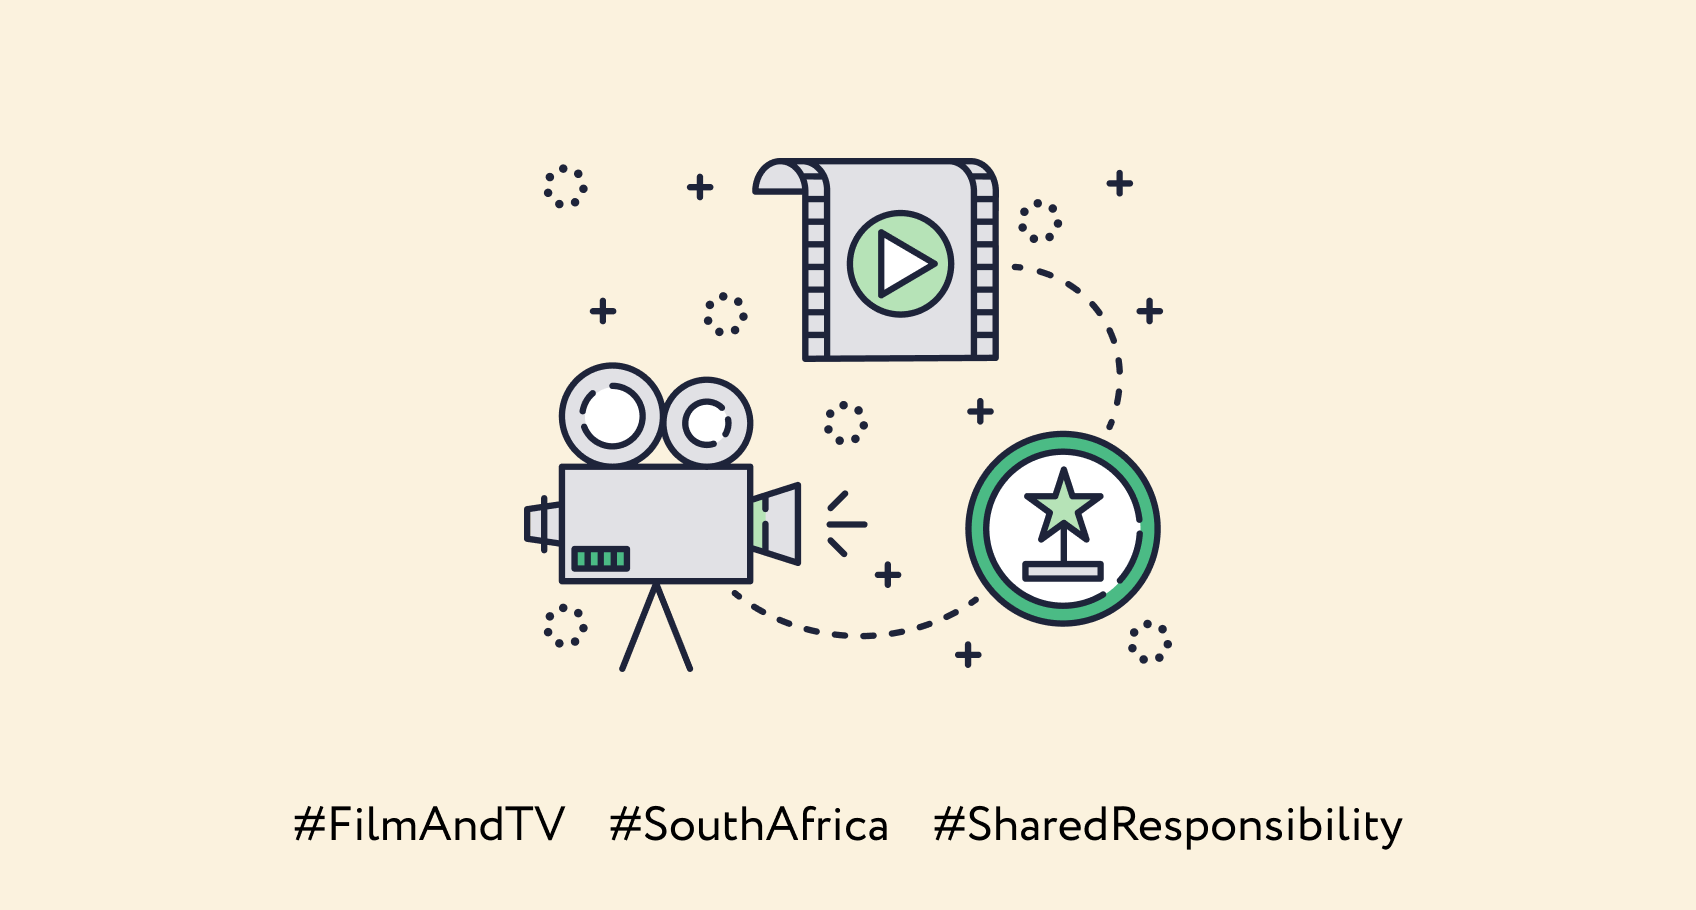 Enabling easy spend control for the film and TV industry in South Africa